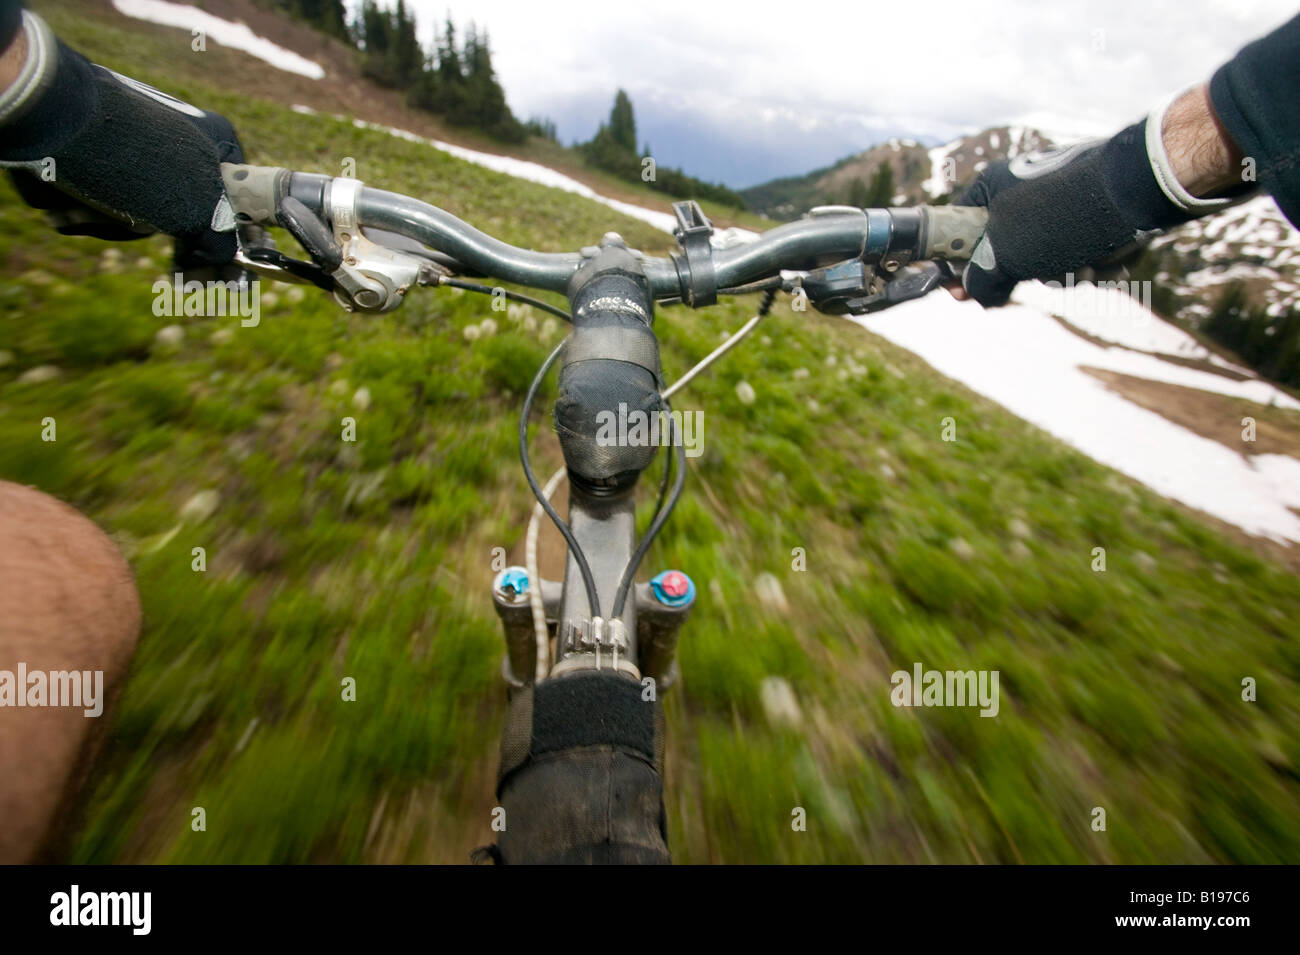 Single track, mountain biking in the southern chilcotin mountains.  British Columbia, Canada - Stock Image